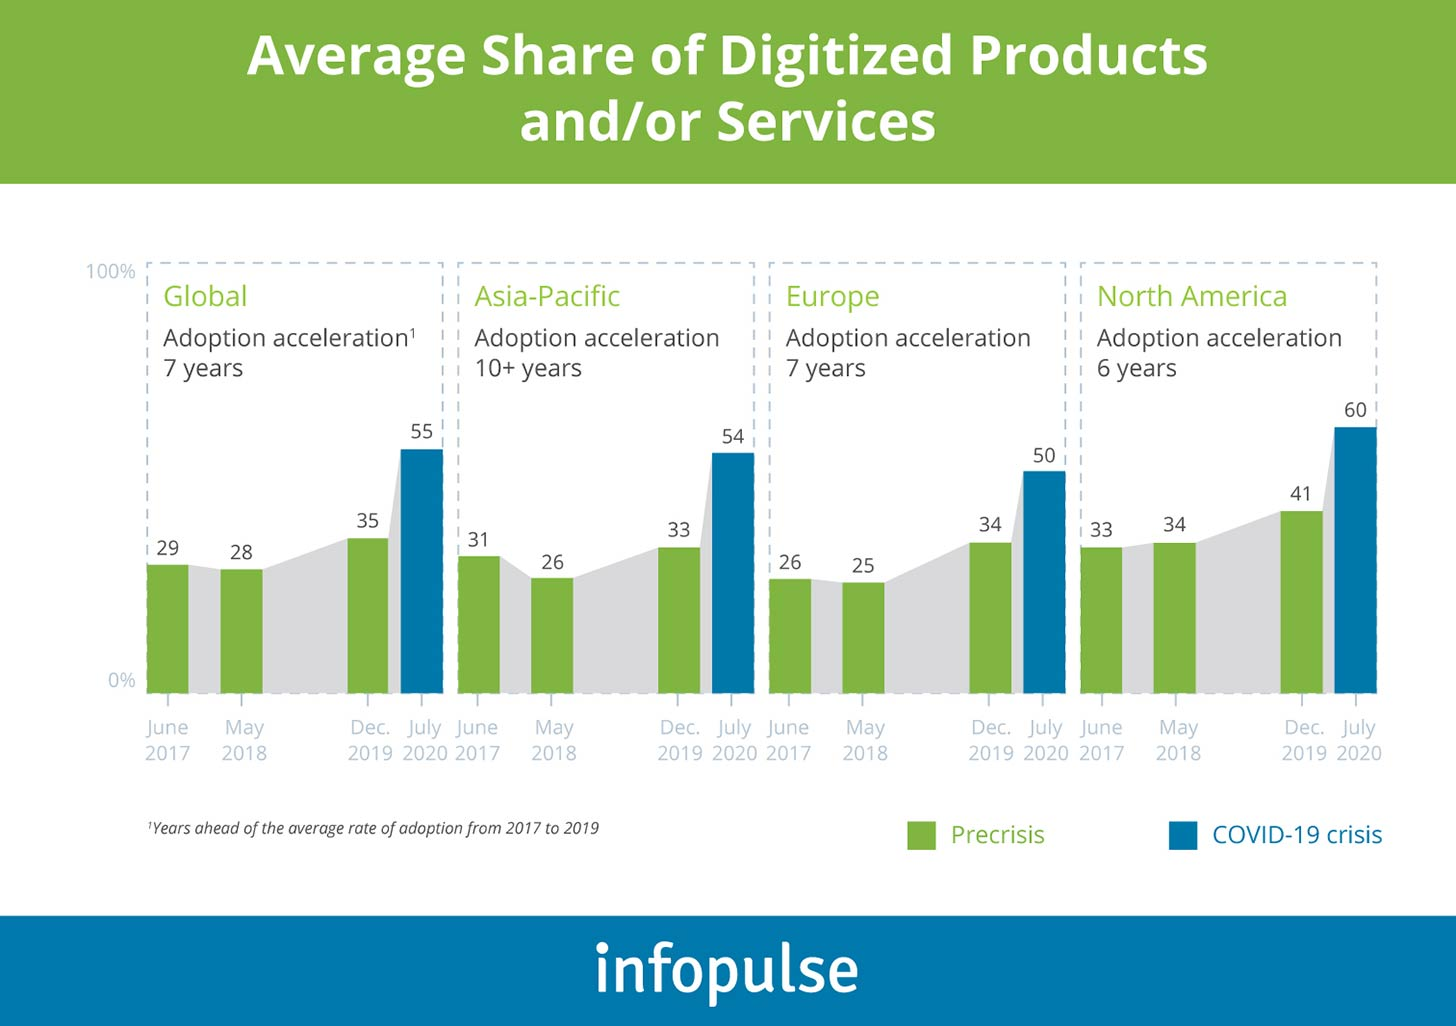 Average Share of Digitized Products and/or Services - Infopulse - 1